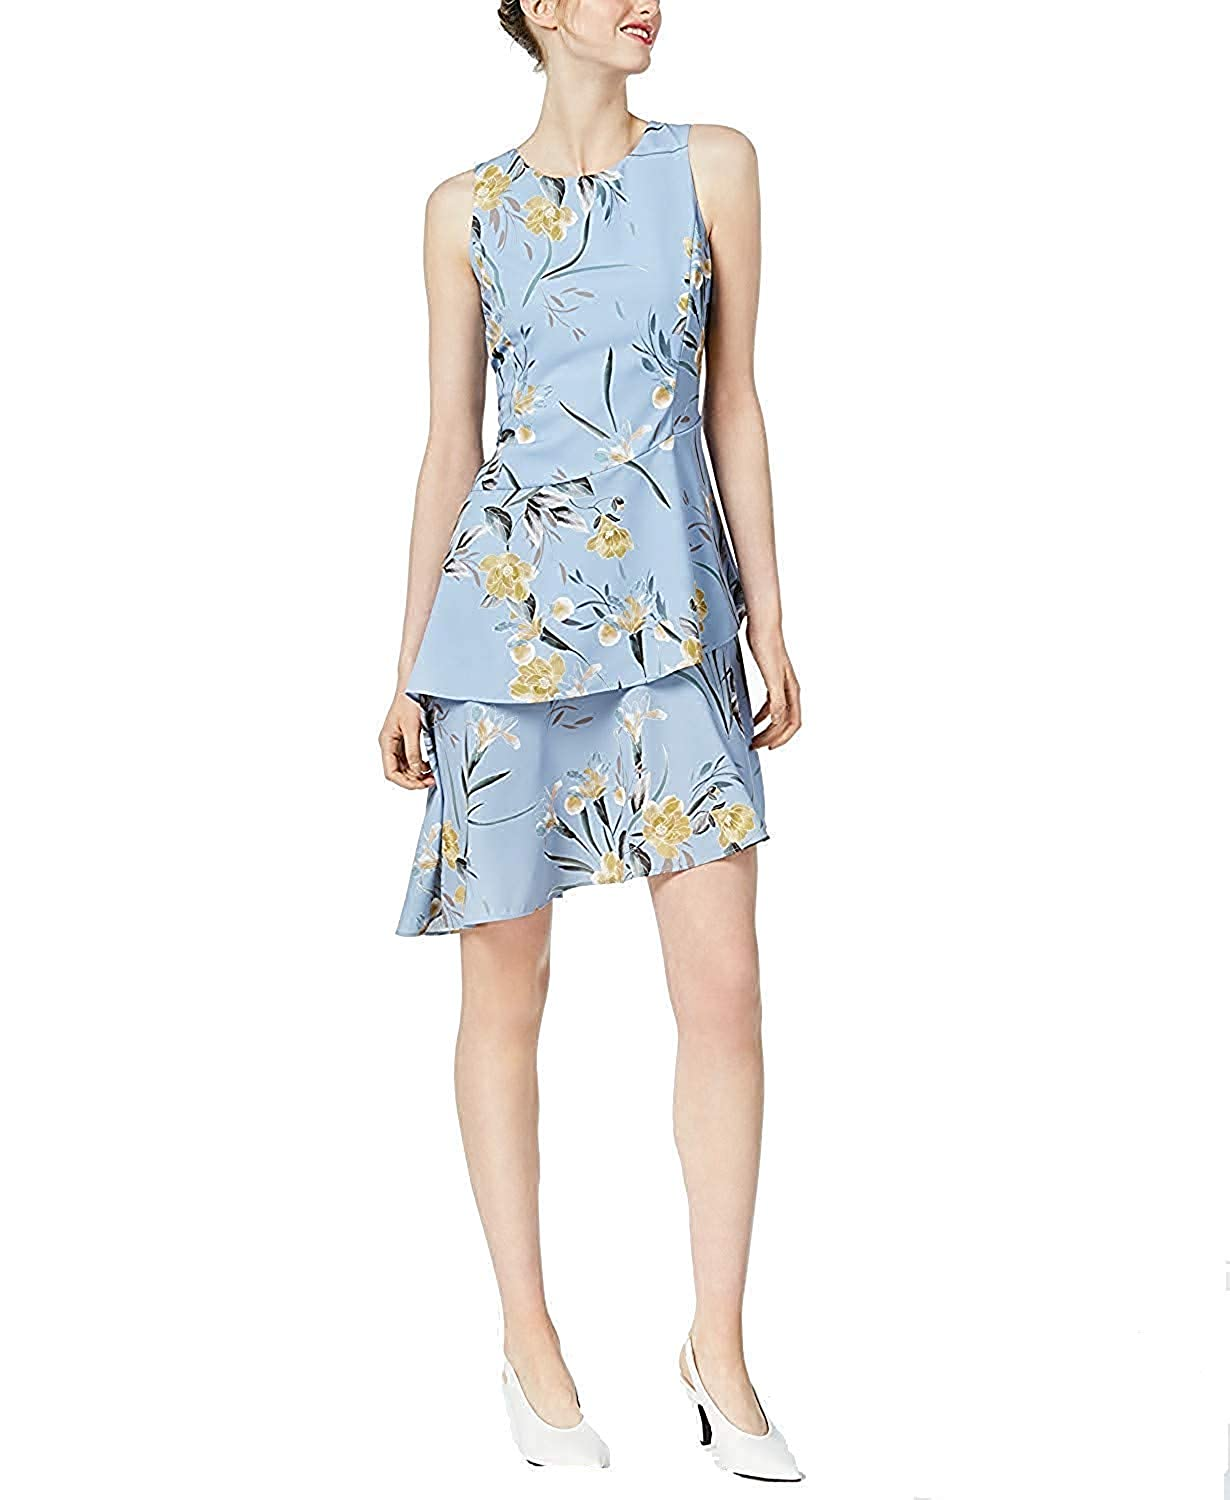 Dark Trop bluee Bar III Women's Printed Asymmetrical Ruffle Dress